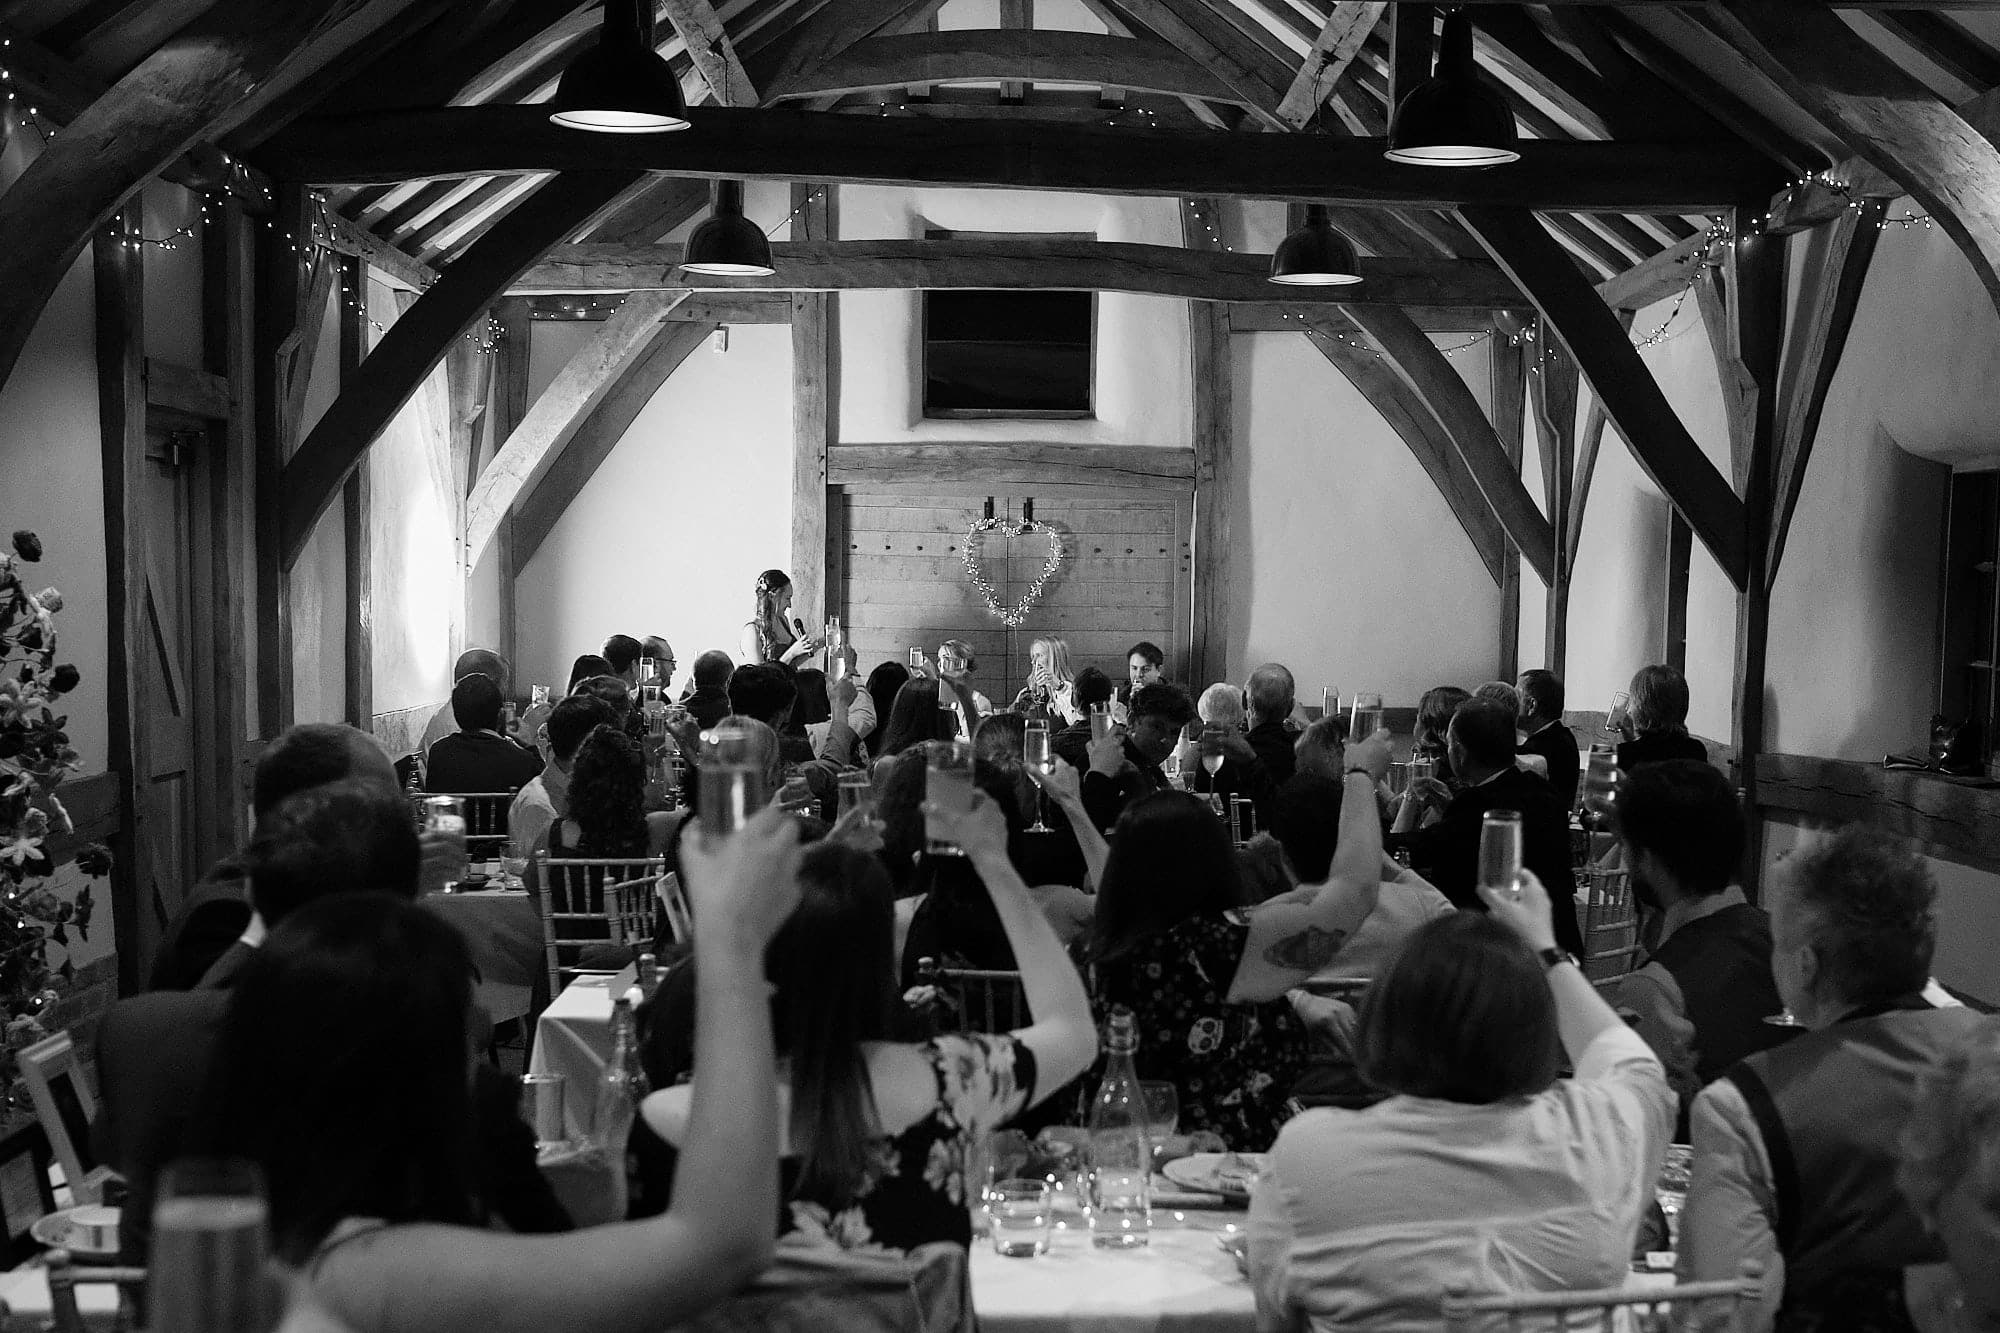 Possibly the best barn wedding venue in Lincolnshire Abbey Farm. This black and white photograph shows guests toasting a gay couple on their wedding day.